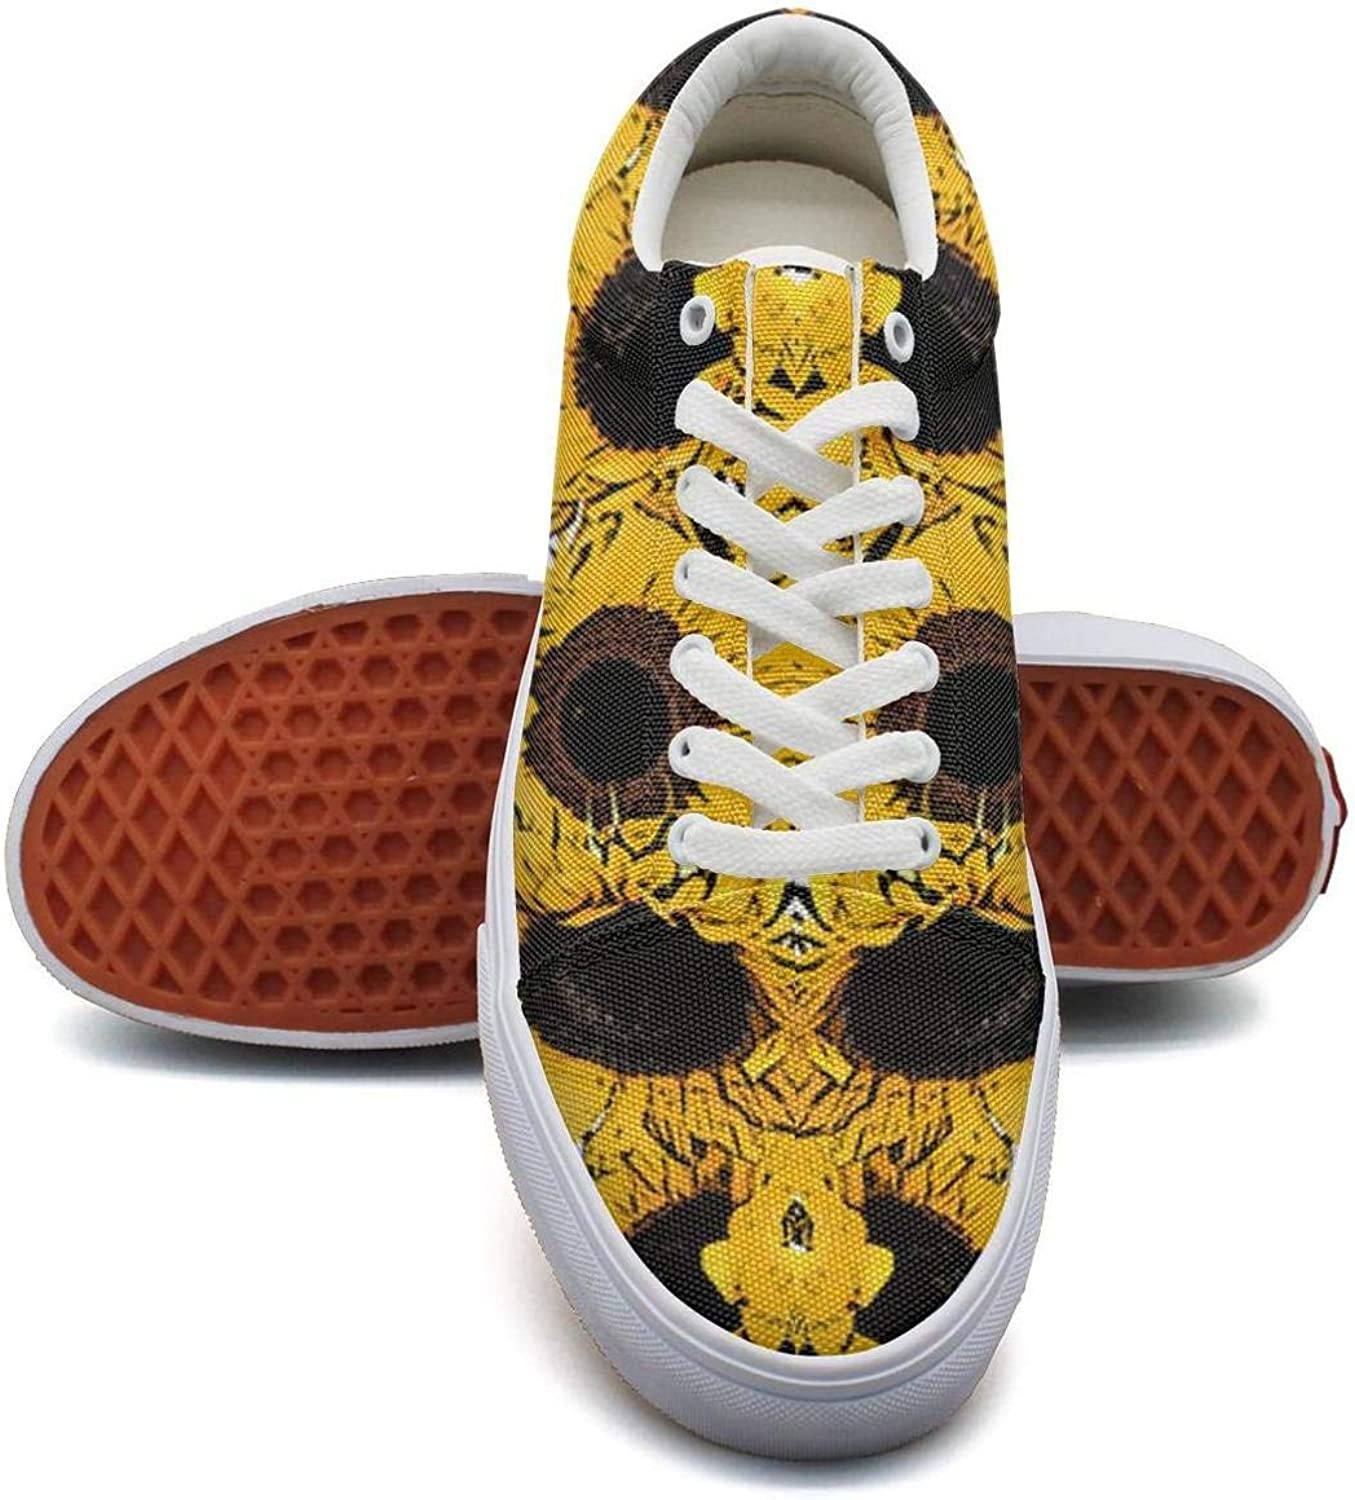 MSSDFF Pattern with Sunflower Seeds Comfortable Canvas Tennis shoes for Women